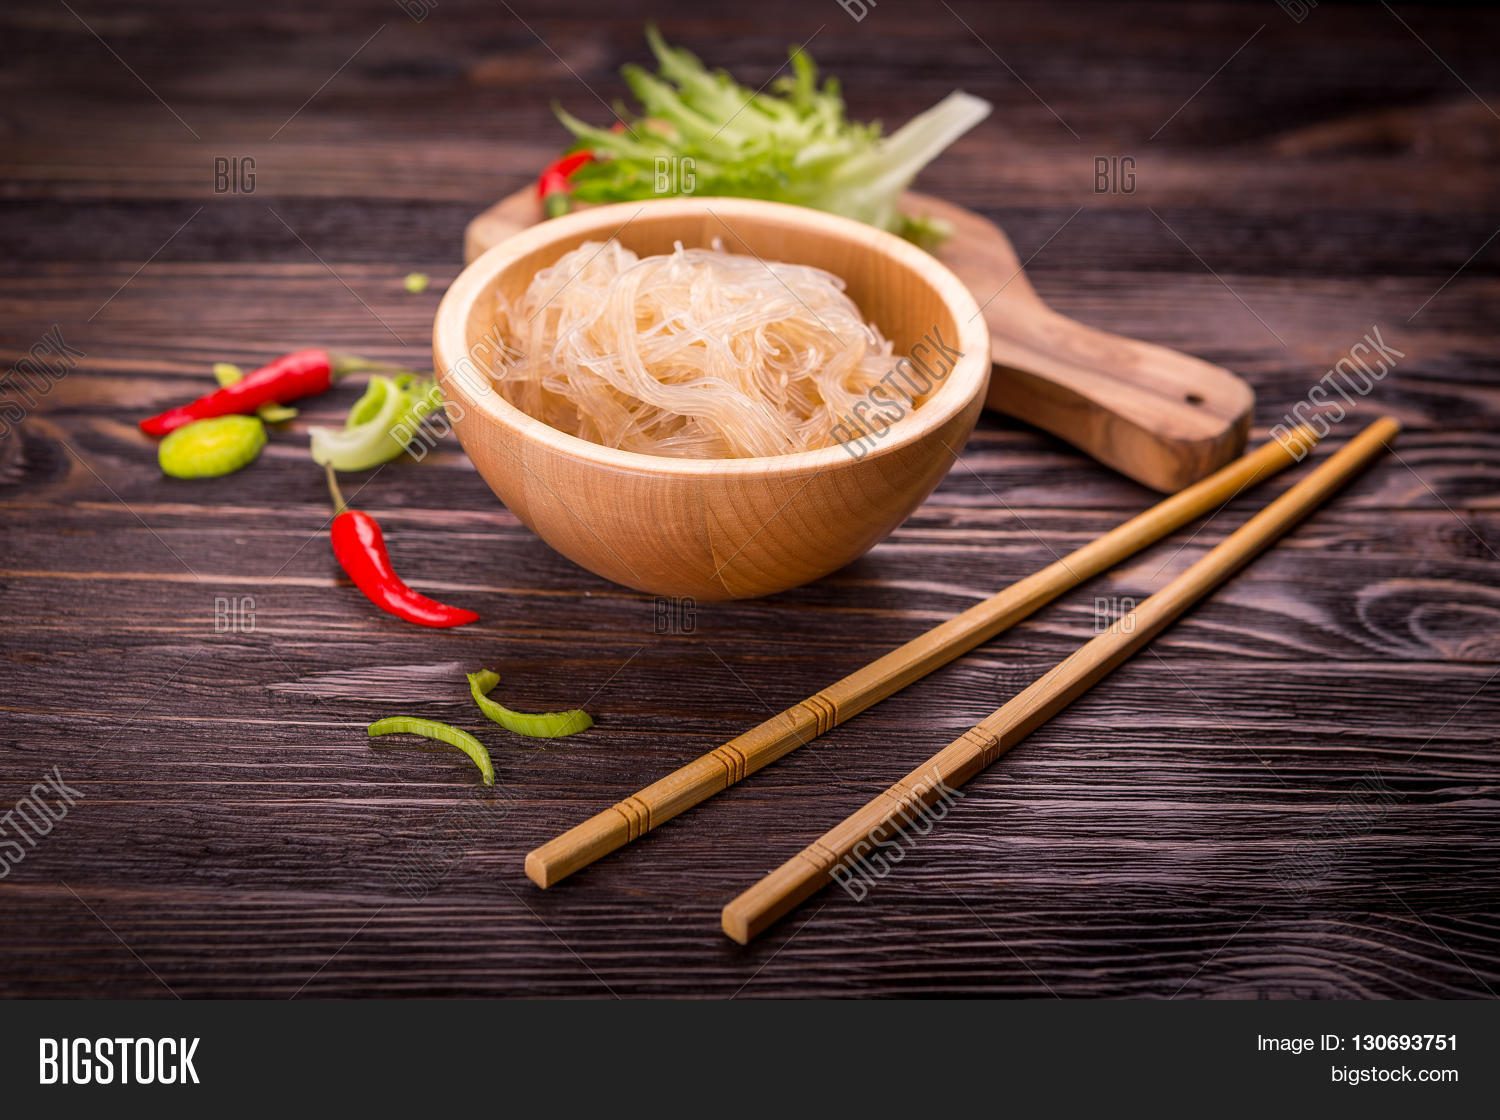 Ingredients asian cuisine rice image photo bigstock for Asian cuisine ingredients